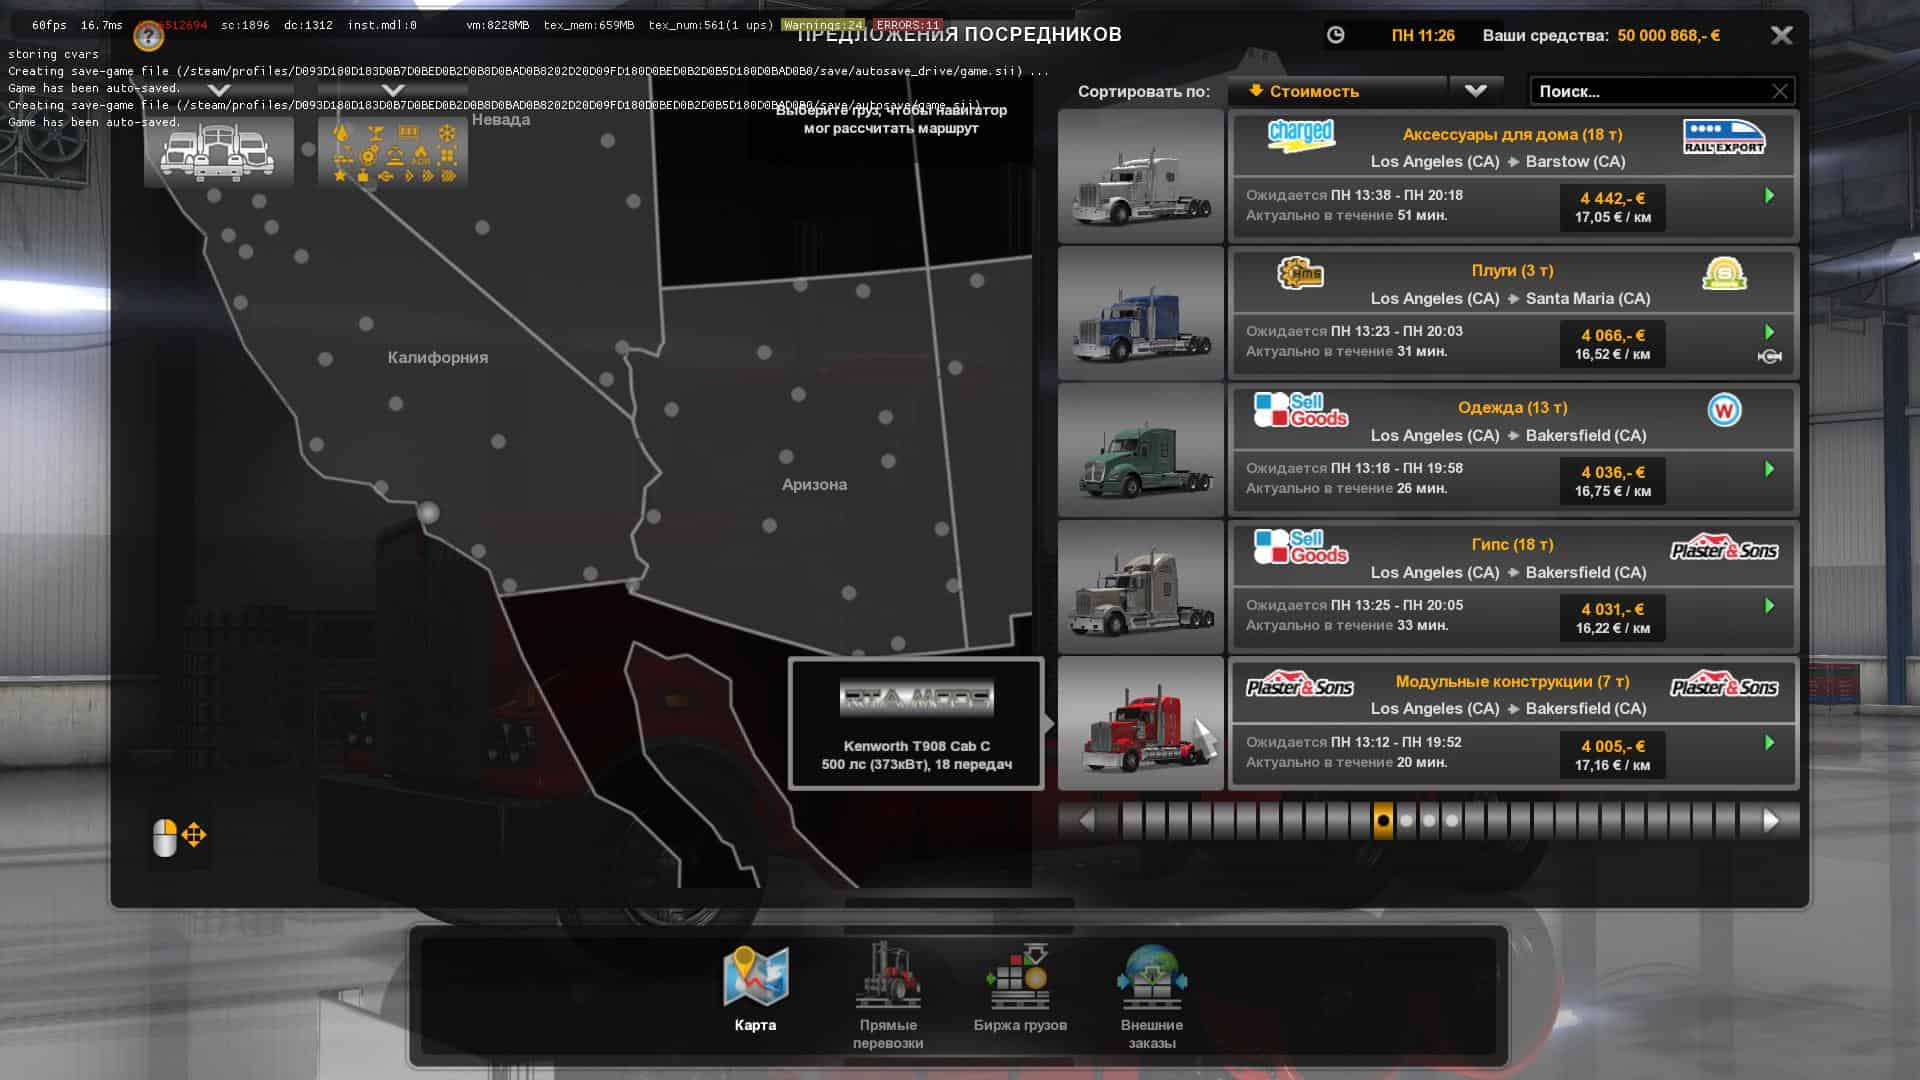 Kenworth T908 v6 4 Tuned ATS 1 34 x - American Truck